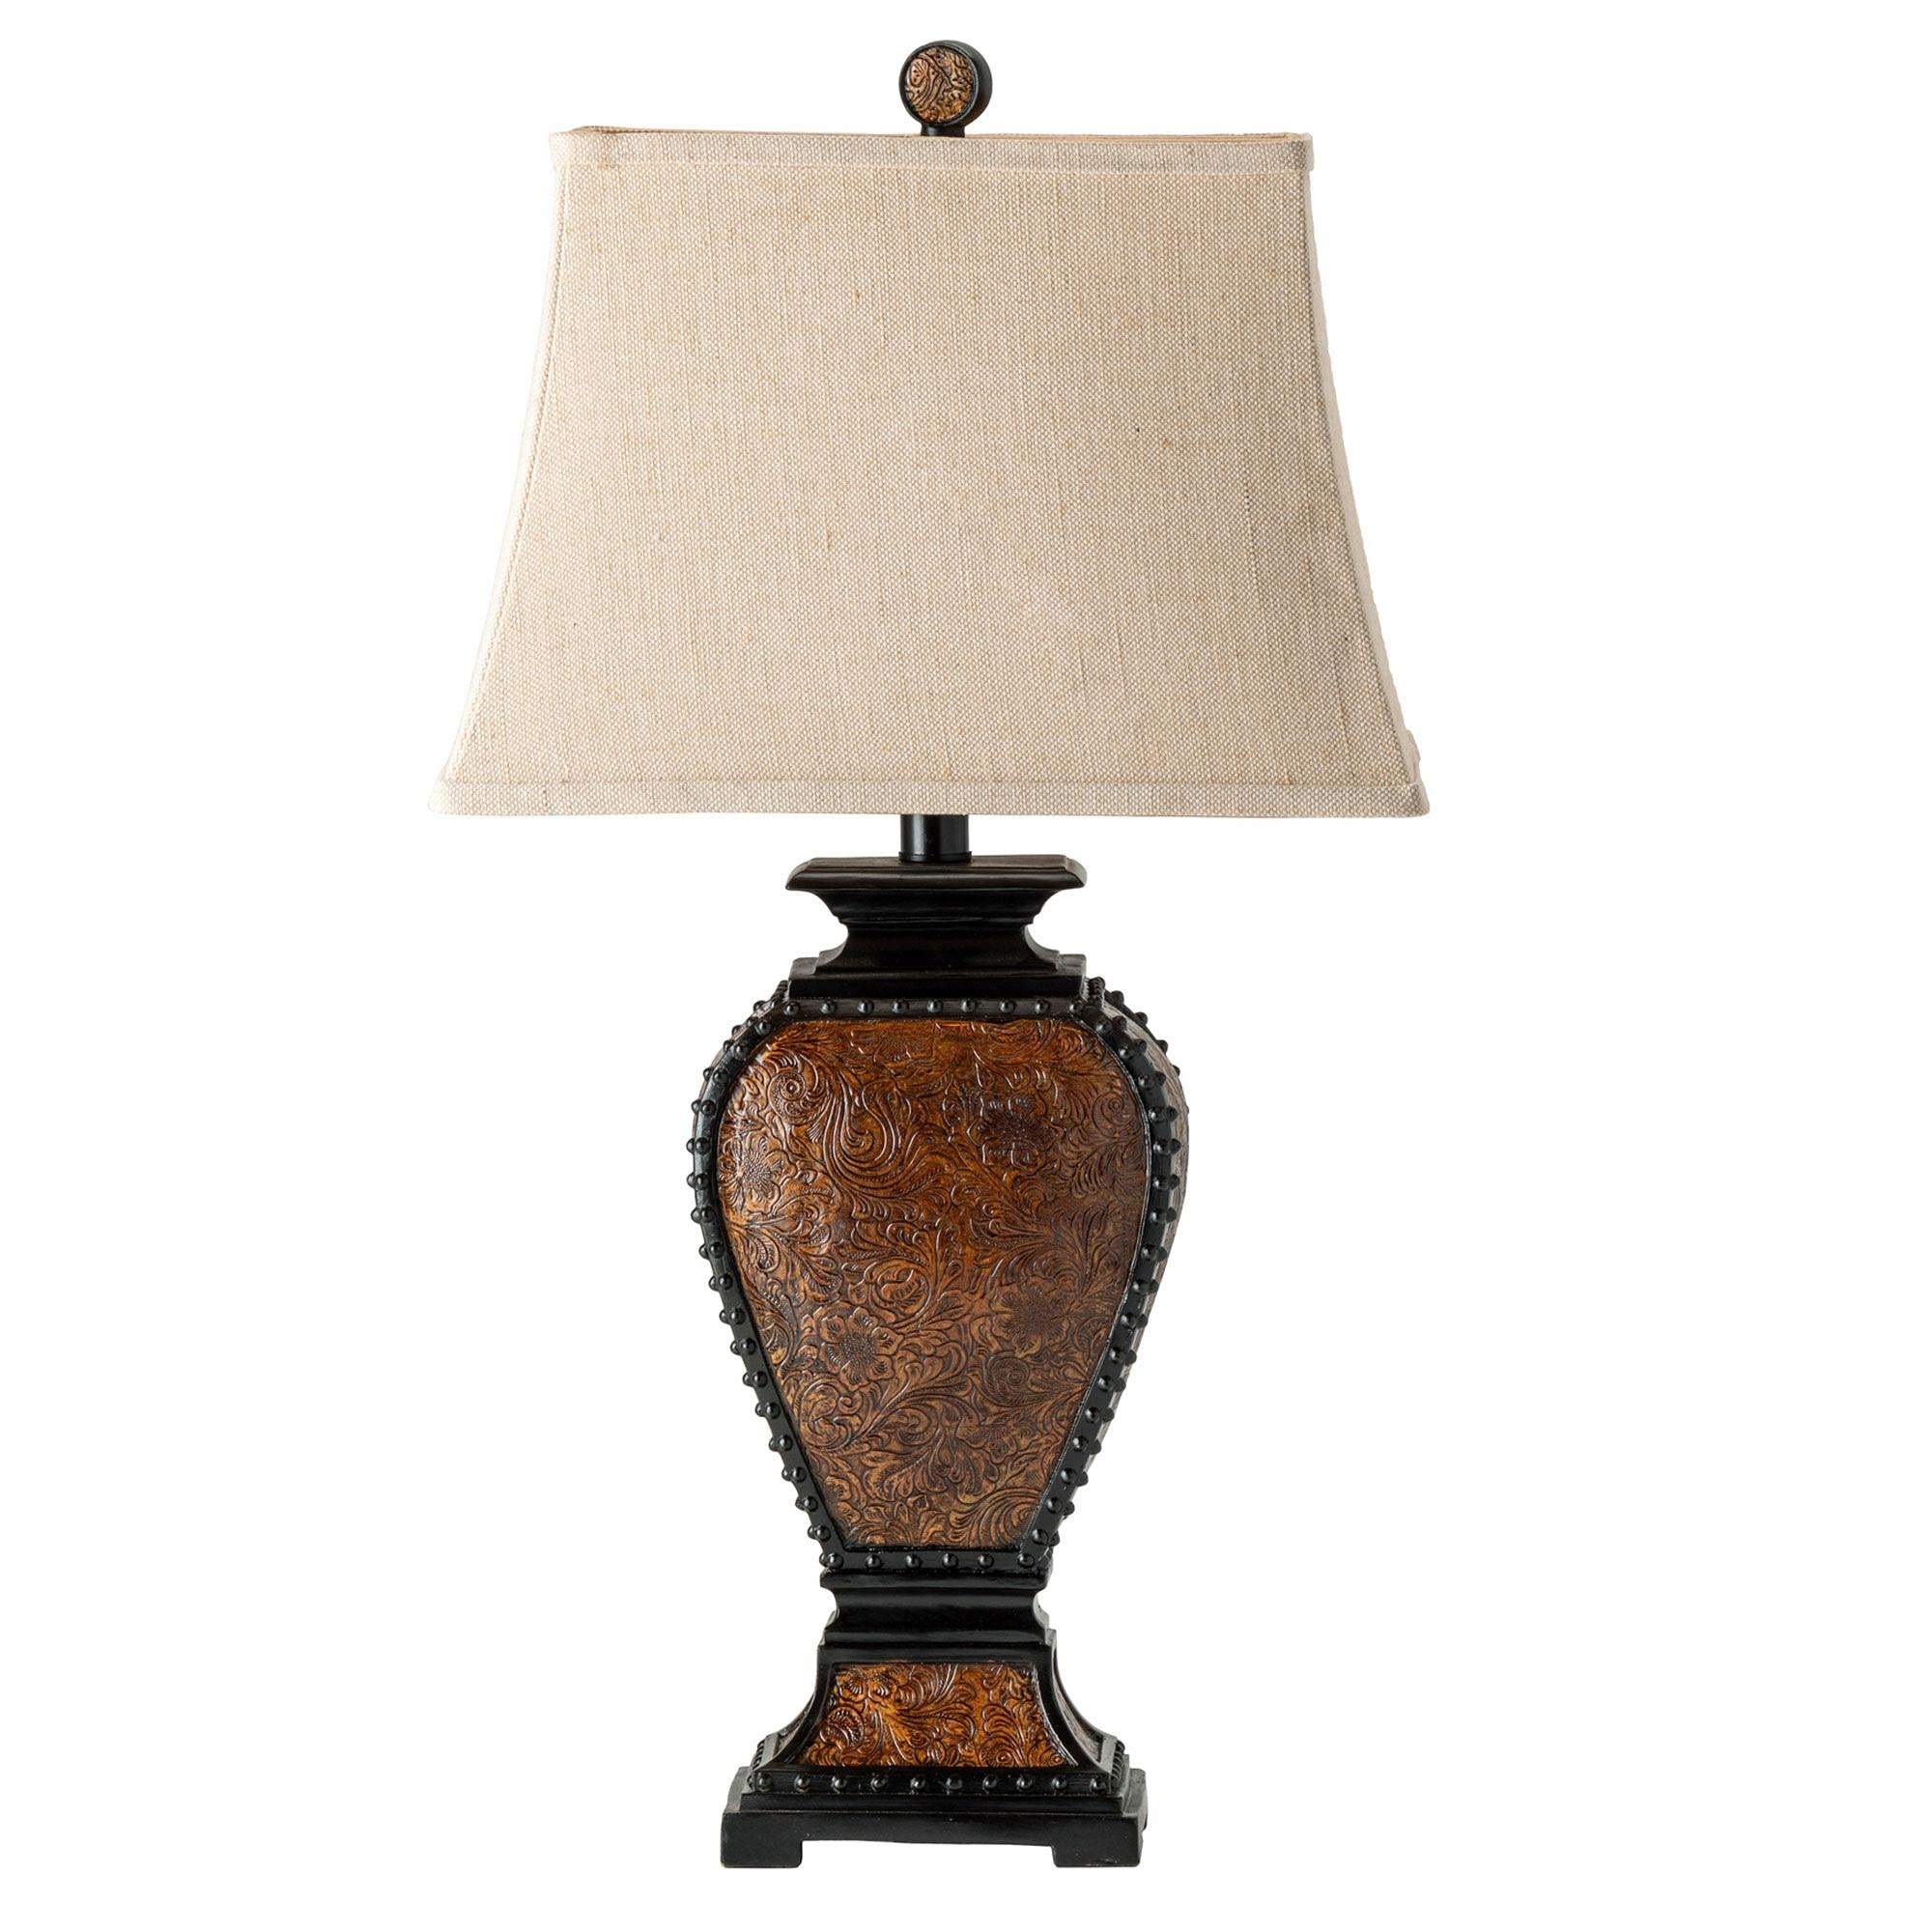 Western Horizon Table Lamp